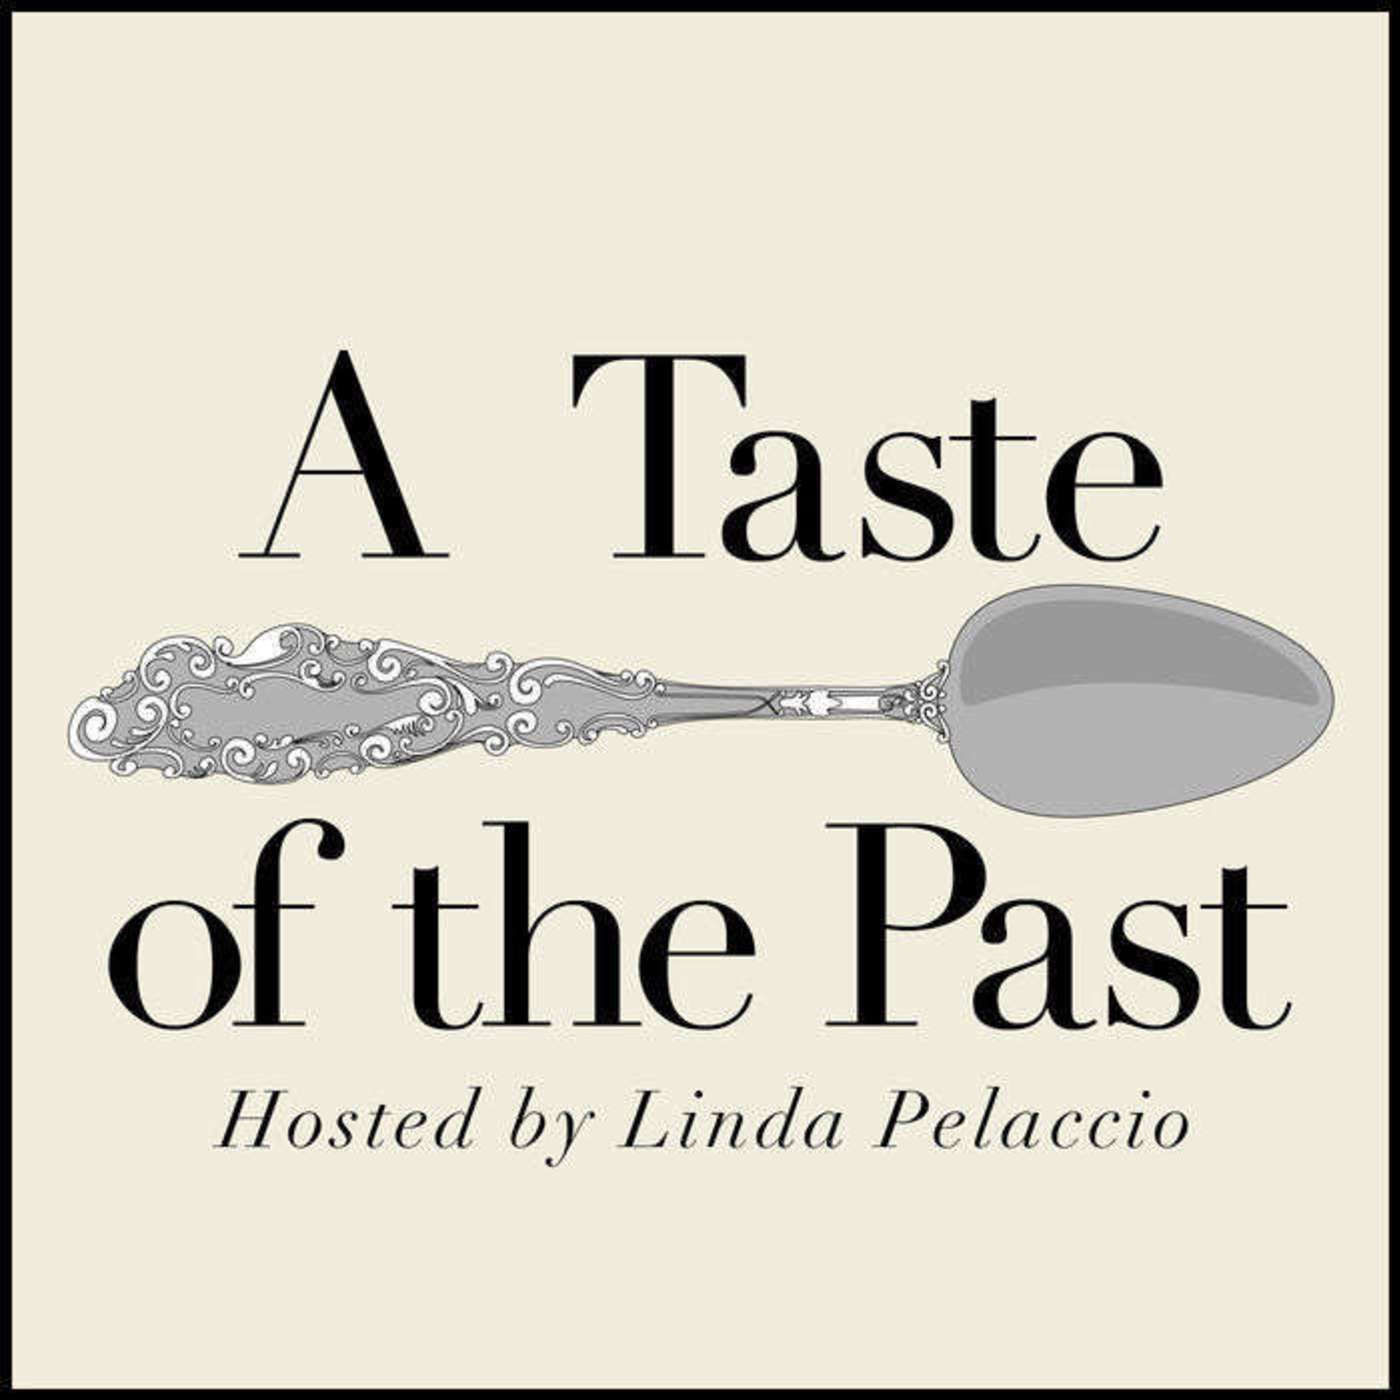 Episode 179: Fried Walleye and Cherry Pie